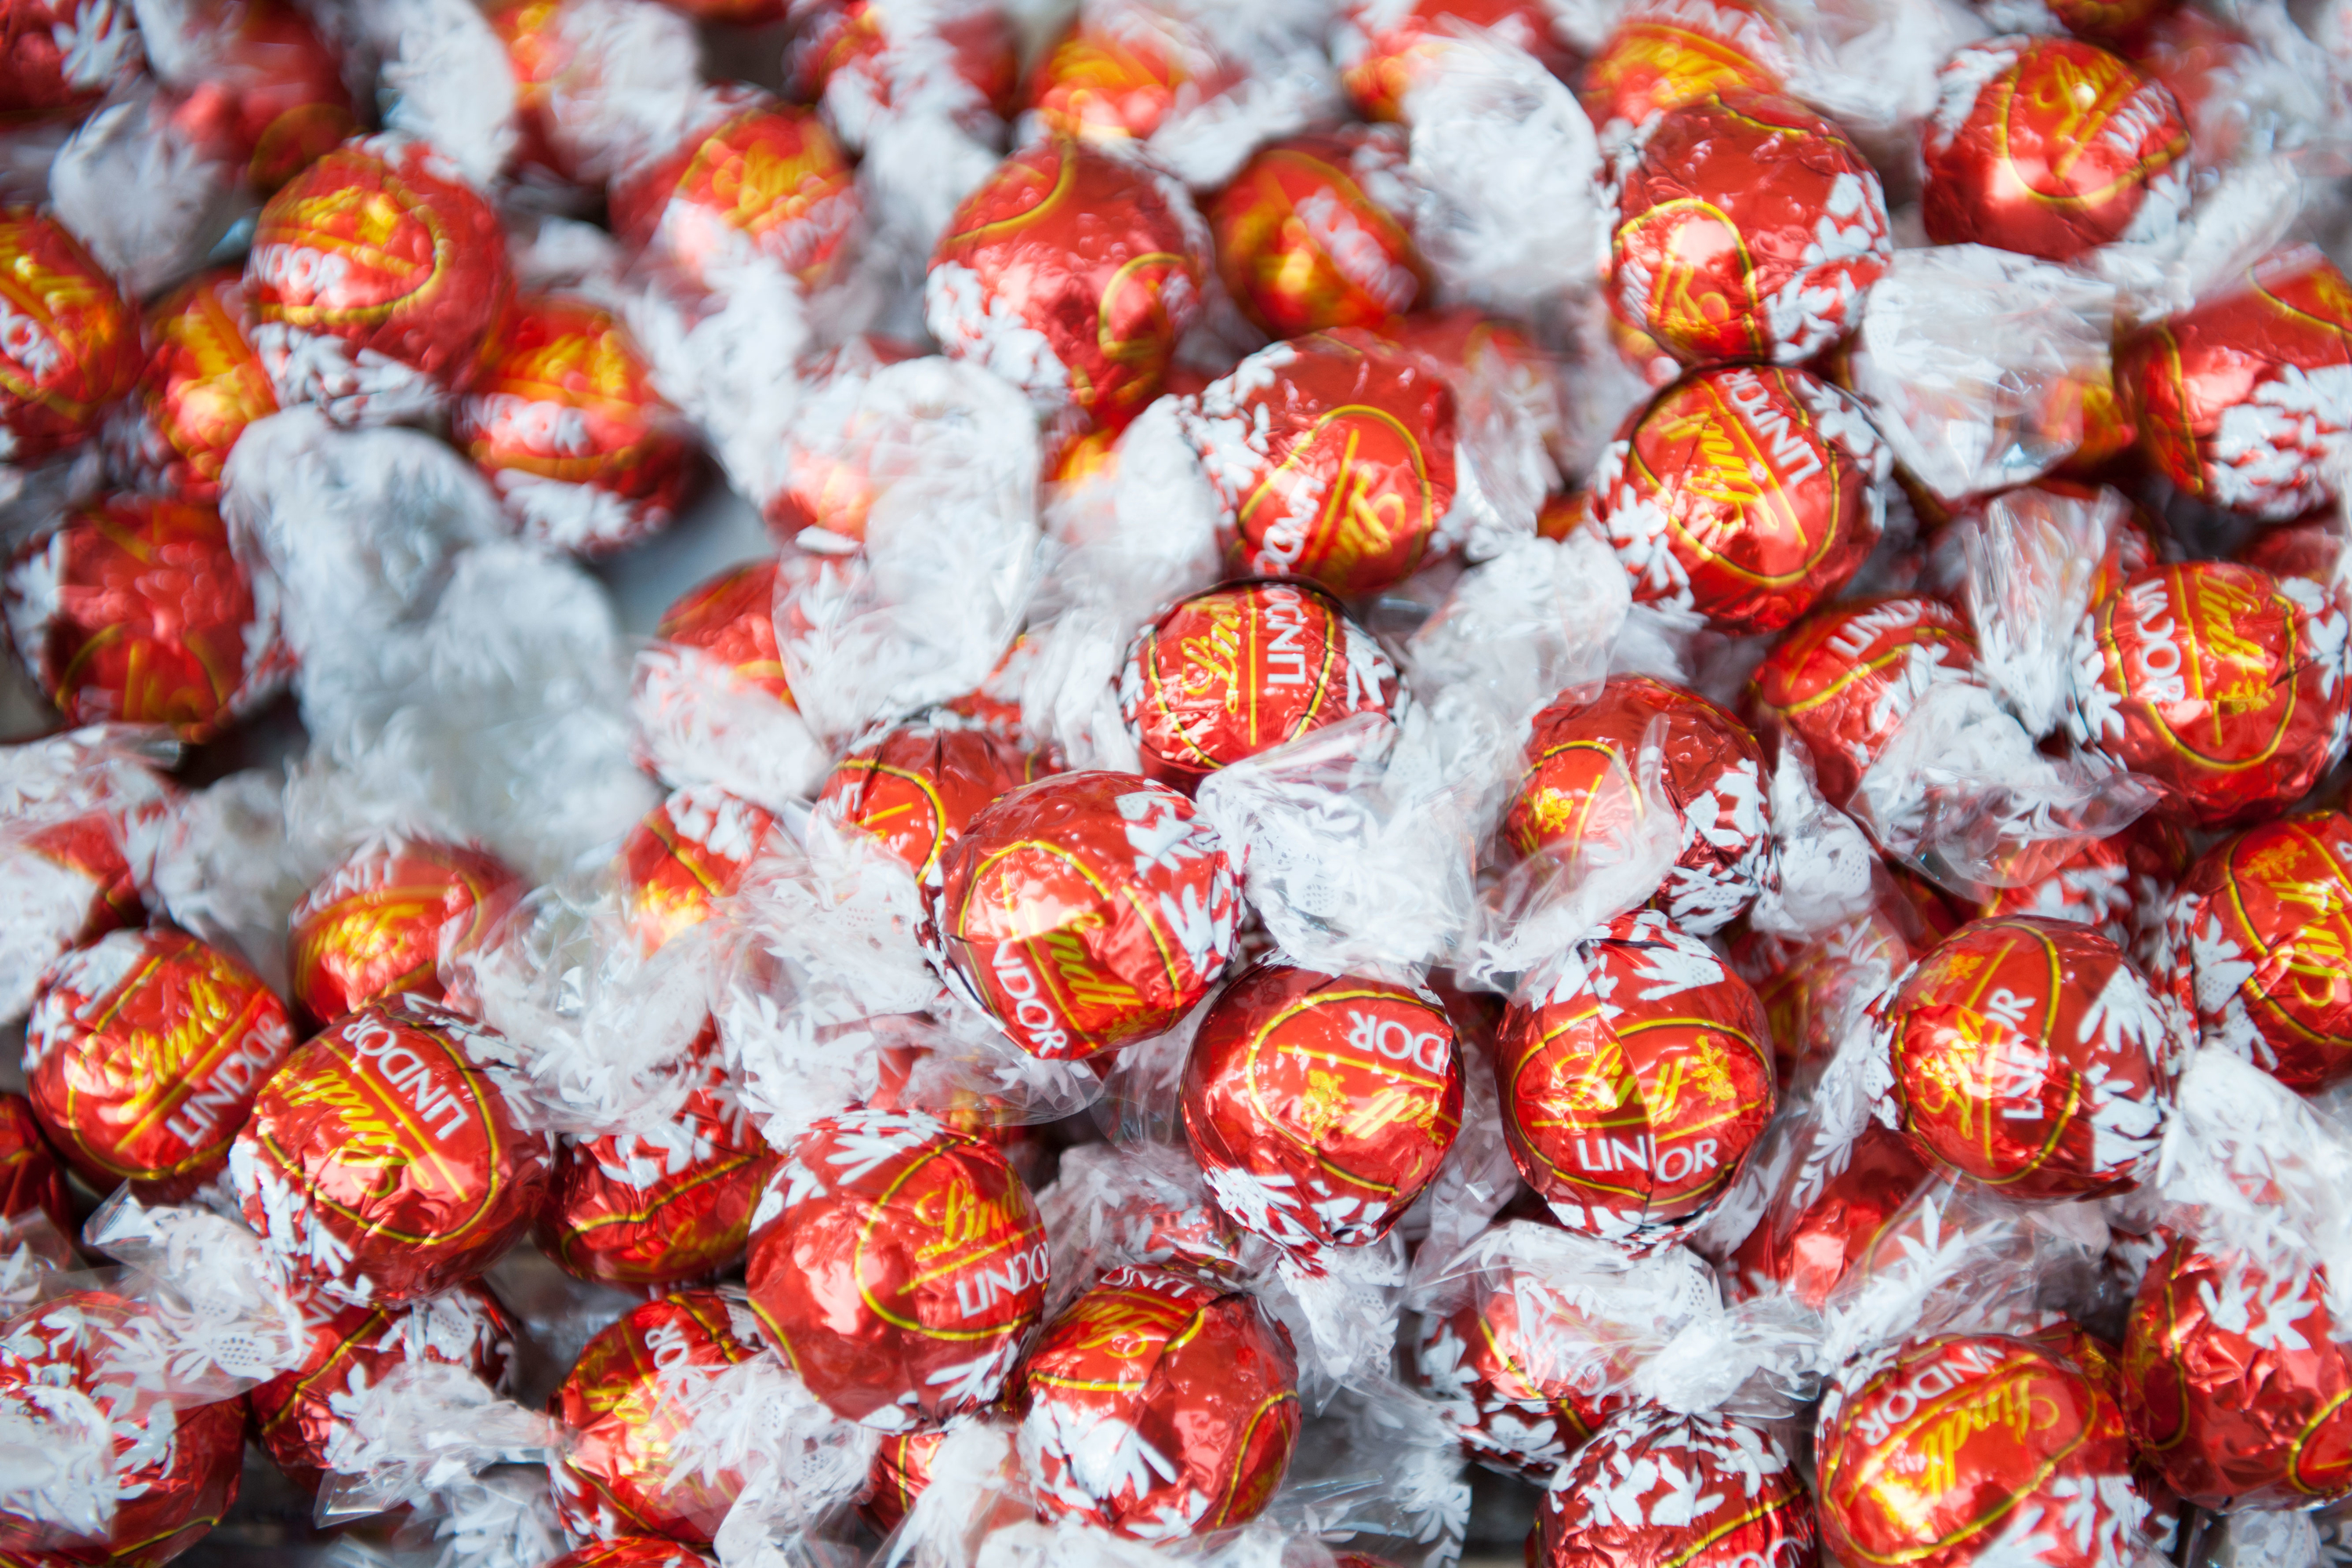 Grey New York wins Lindt USA confectionery account, beating out MDC Partners' 72andSunny, Fig (rebranded from Figliulo & Partners last year) and Omnicom's TBWA